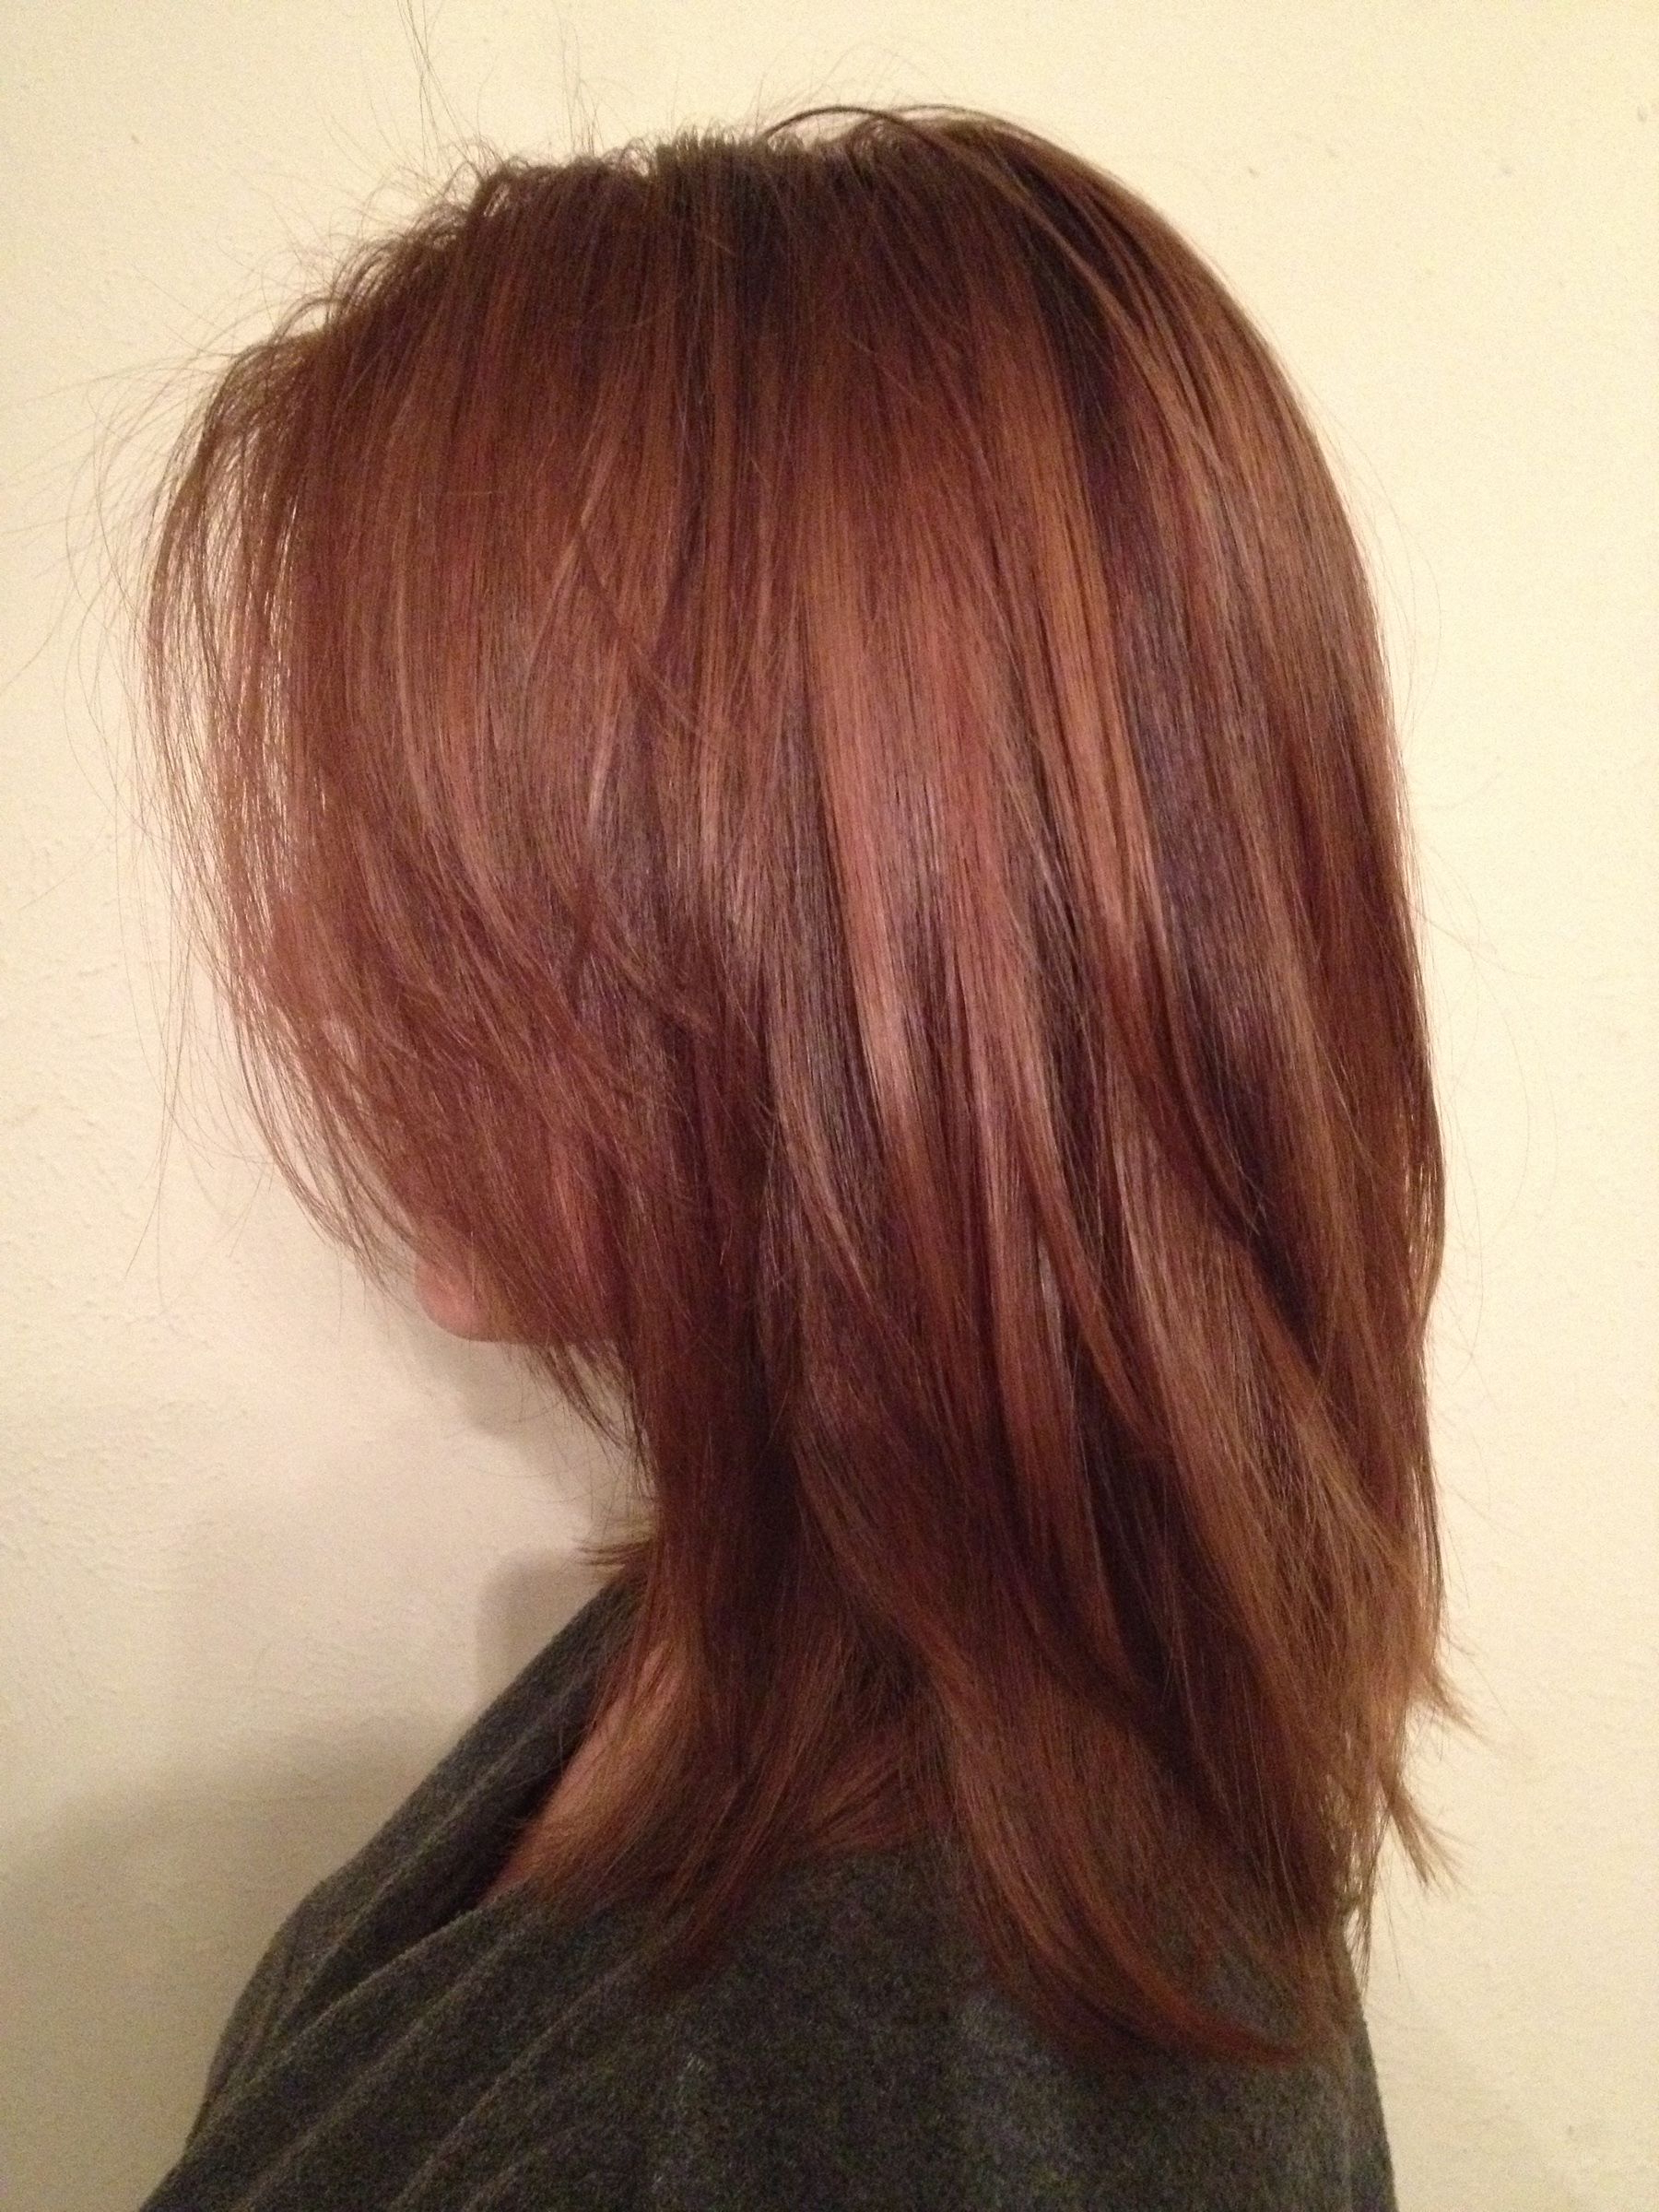 Pictures Of Auburn Hair With Highlights And Lowlights – Hairs Within Most Up To Date Auburn Medium Haircuts (View 13 of 20)